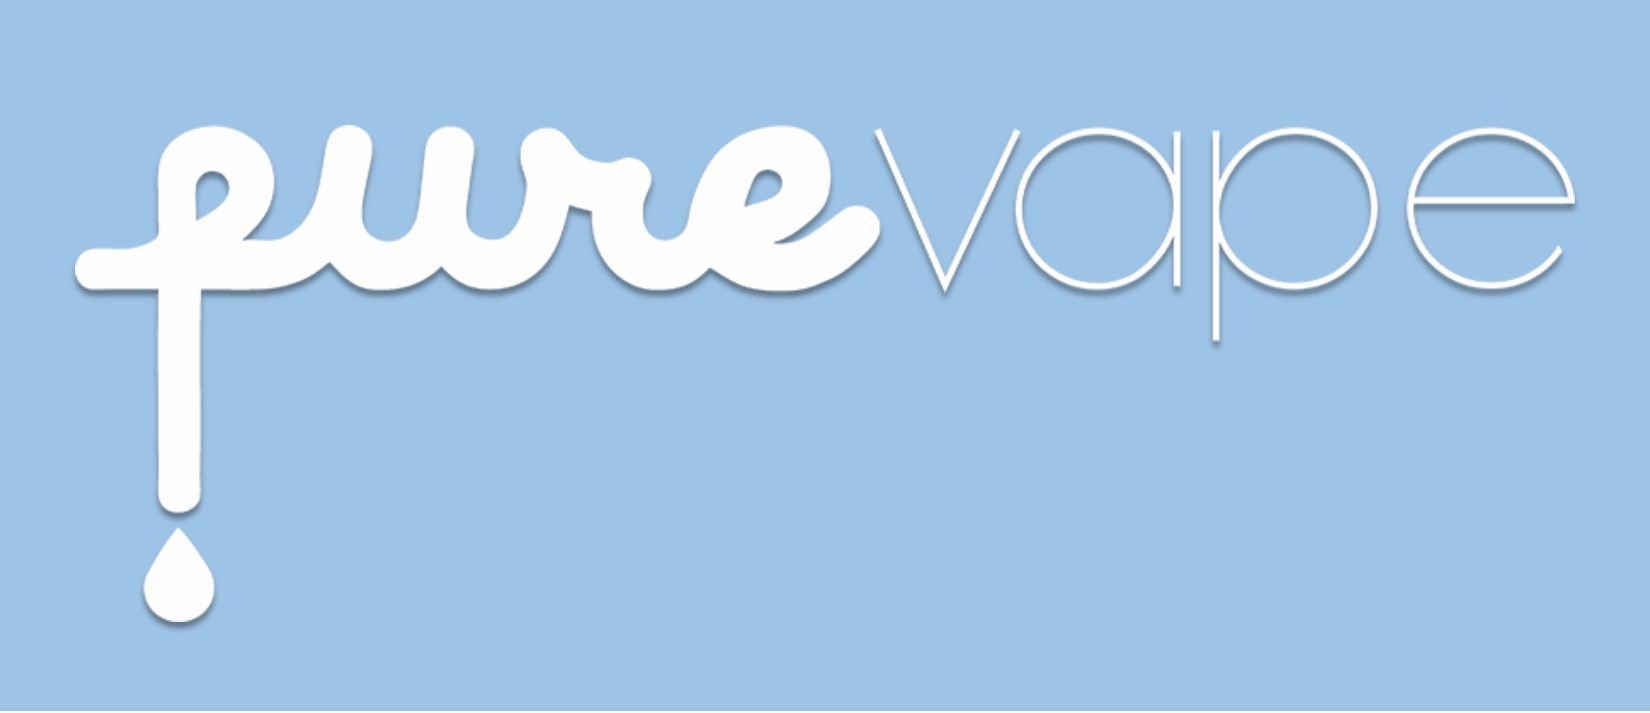 FROM 12 - 4 PM: PURE VAPE WILL BE PROVIDING A FREE BATTERY WITH THE PURCHASE OF ANY PURE CARTRIDGES. ALSO, RECEIVE A DAB FOR ONLY $1 WITH ANY PURCHASE!   Forever Pure!  Pure Vape proudly offers the cleanest vaping experience with a wide selection of strains and products to meet all of your 710 needs. All Pure Vape products are lab tested and deliver high potency alongside delicious cannabis-derived flavors. Their menu offers something for everyone with potency that will satisfy the most seasoned smoker and terpenes that entice and excite with every puff!